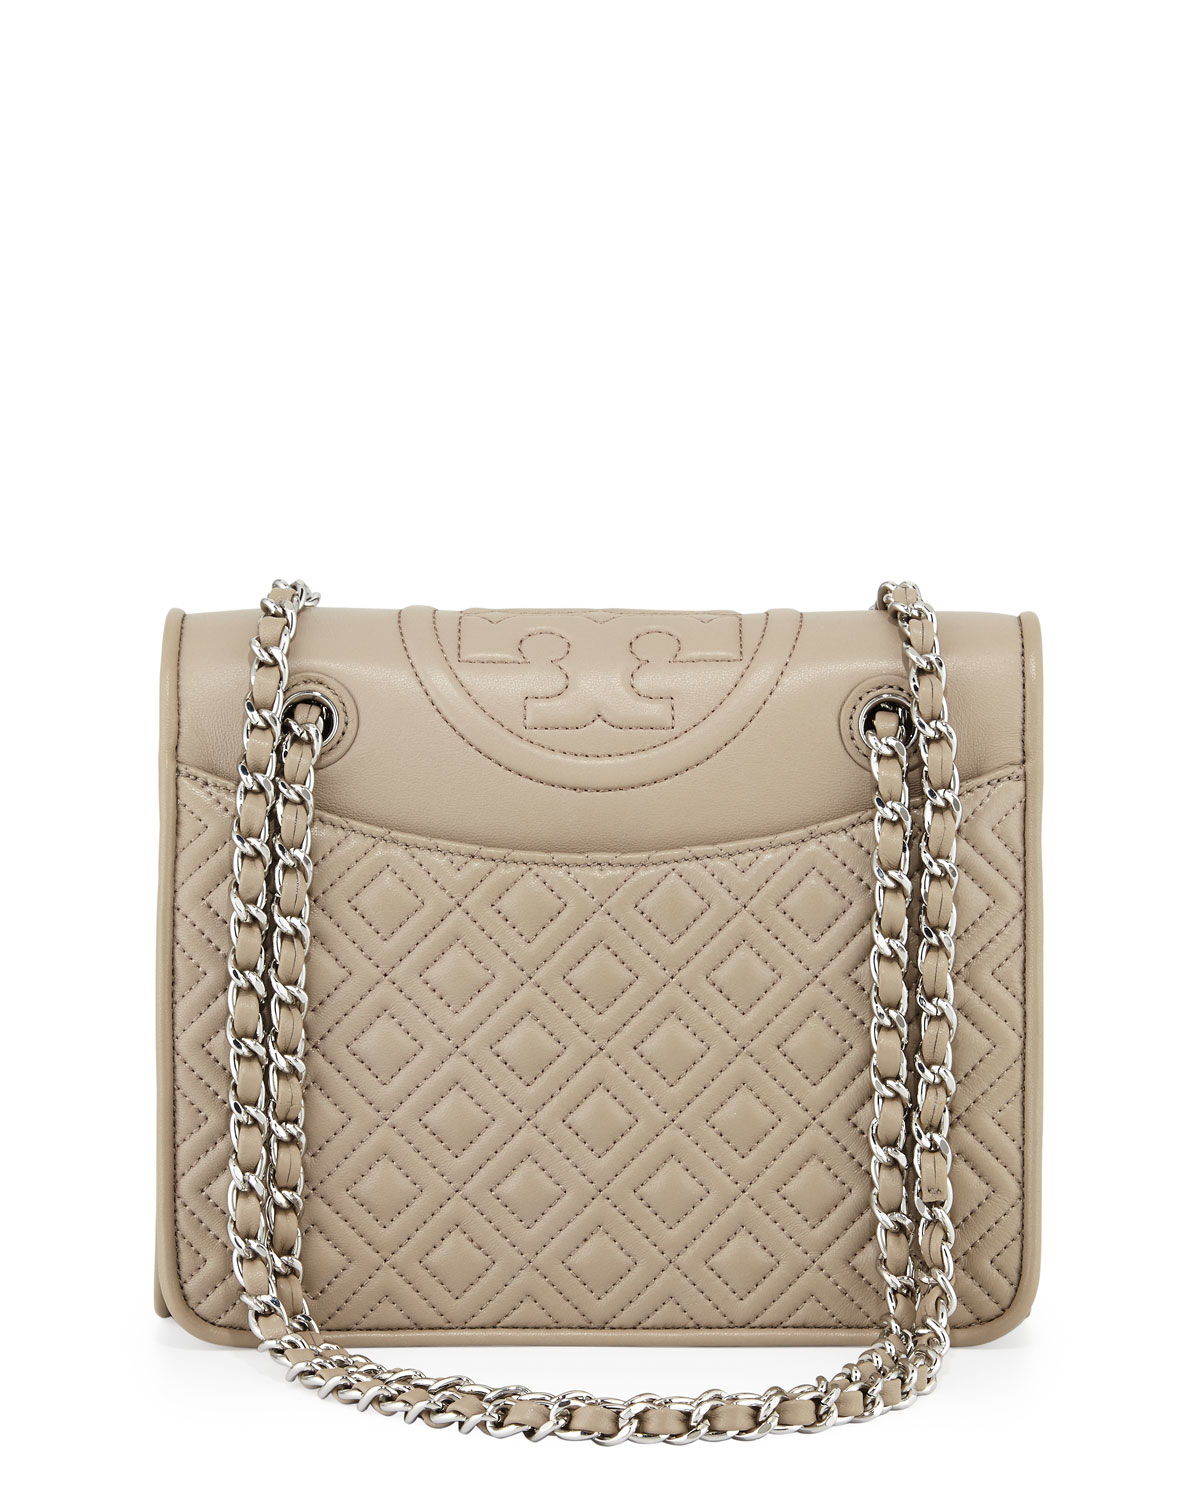 8c924f6db65 Tory Burch Fleming Quilted Medium Flap Shoulder Bag in Gray - Lyst